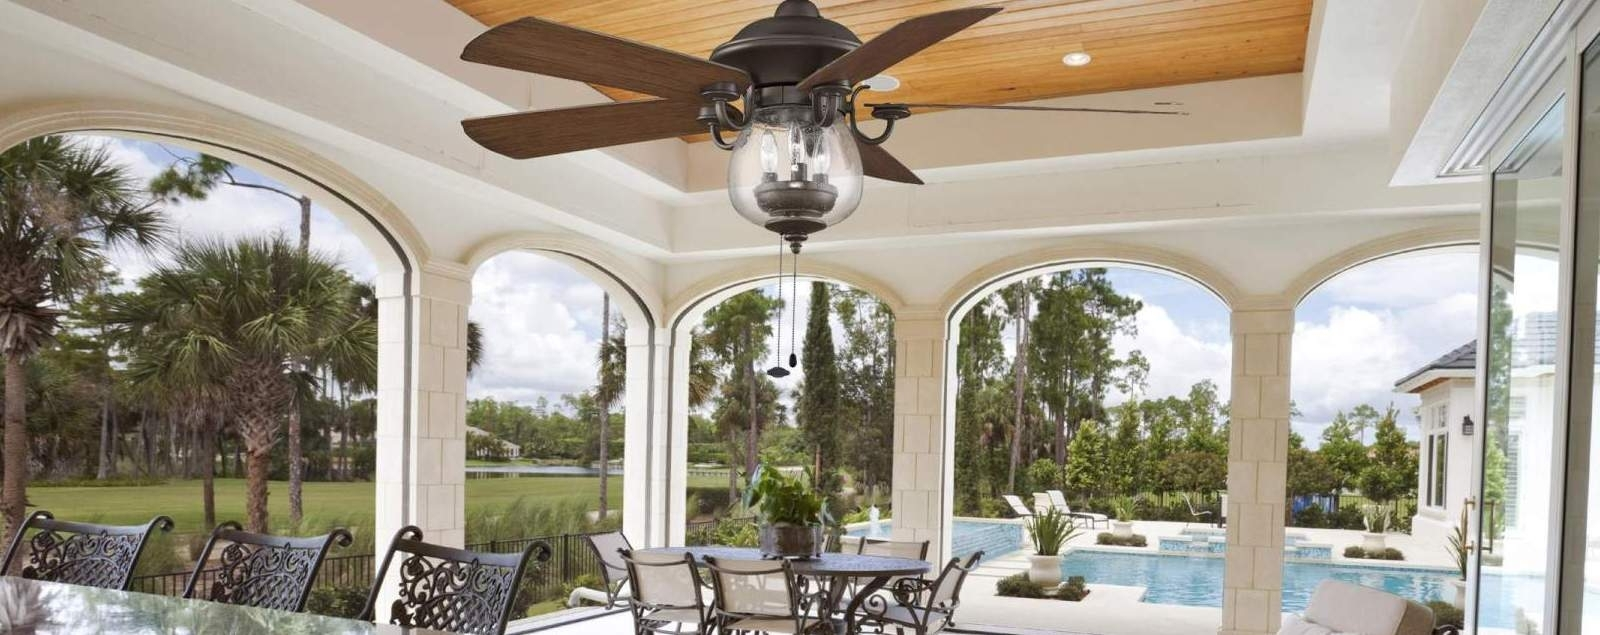 Favorite Outdoor Porch Ceiling Fans With Lights Regarding Outdoor Ceiling Fans – Shop Wet, Dry, And Damp Rated Outdoor Fans (View 3 of 20)